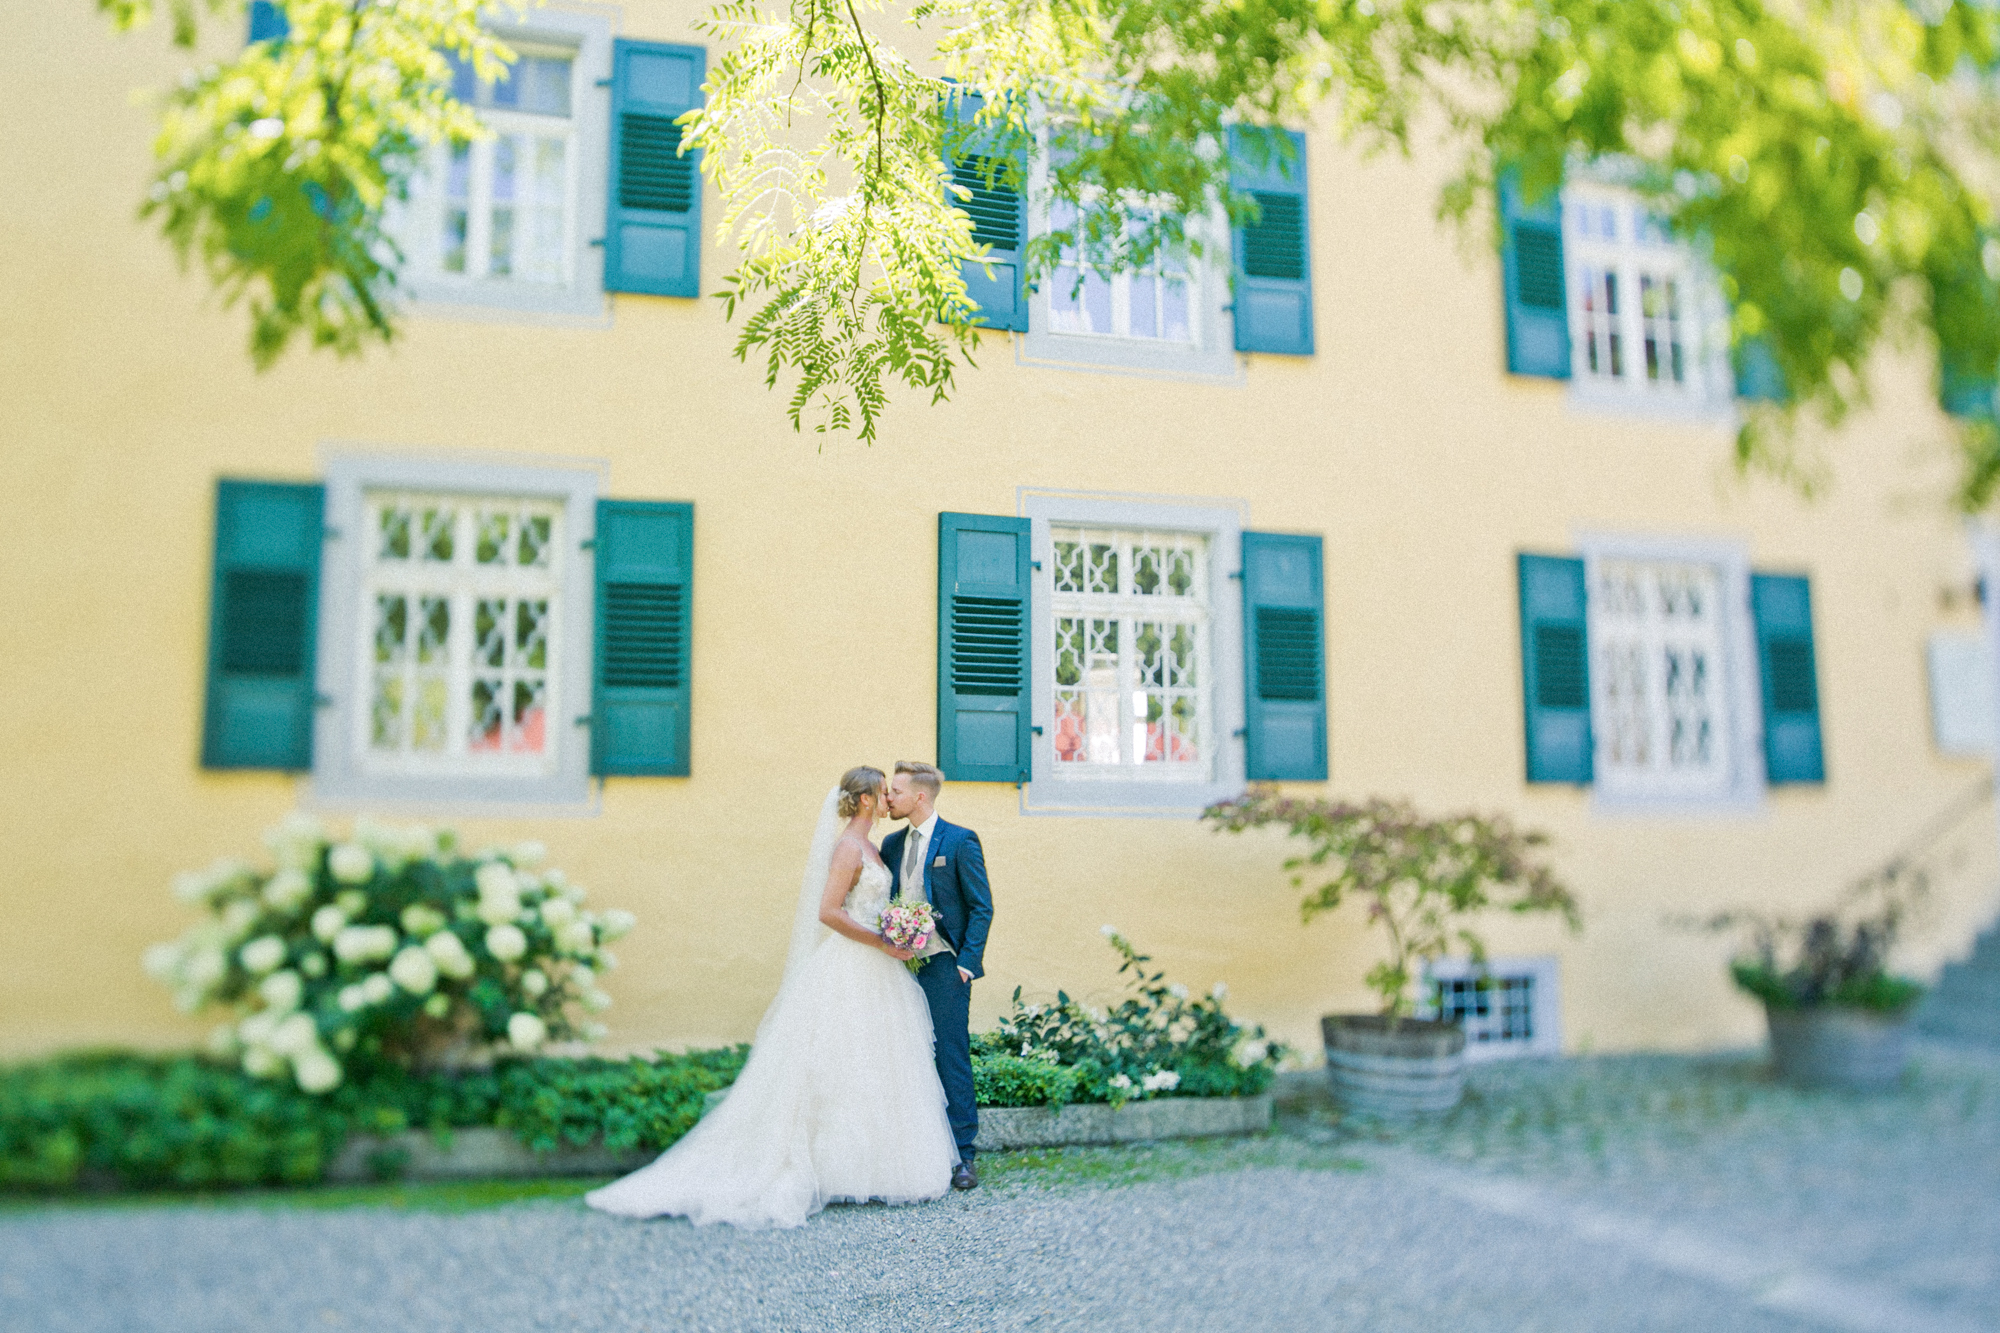 Hochzeitsfotograf Hermann Damm_Afterwedding Shooting Bodensee